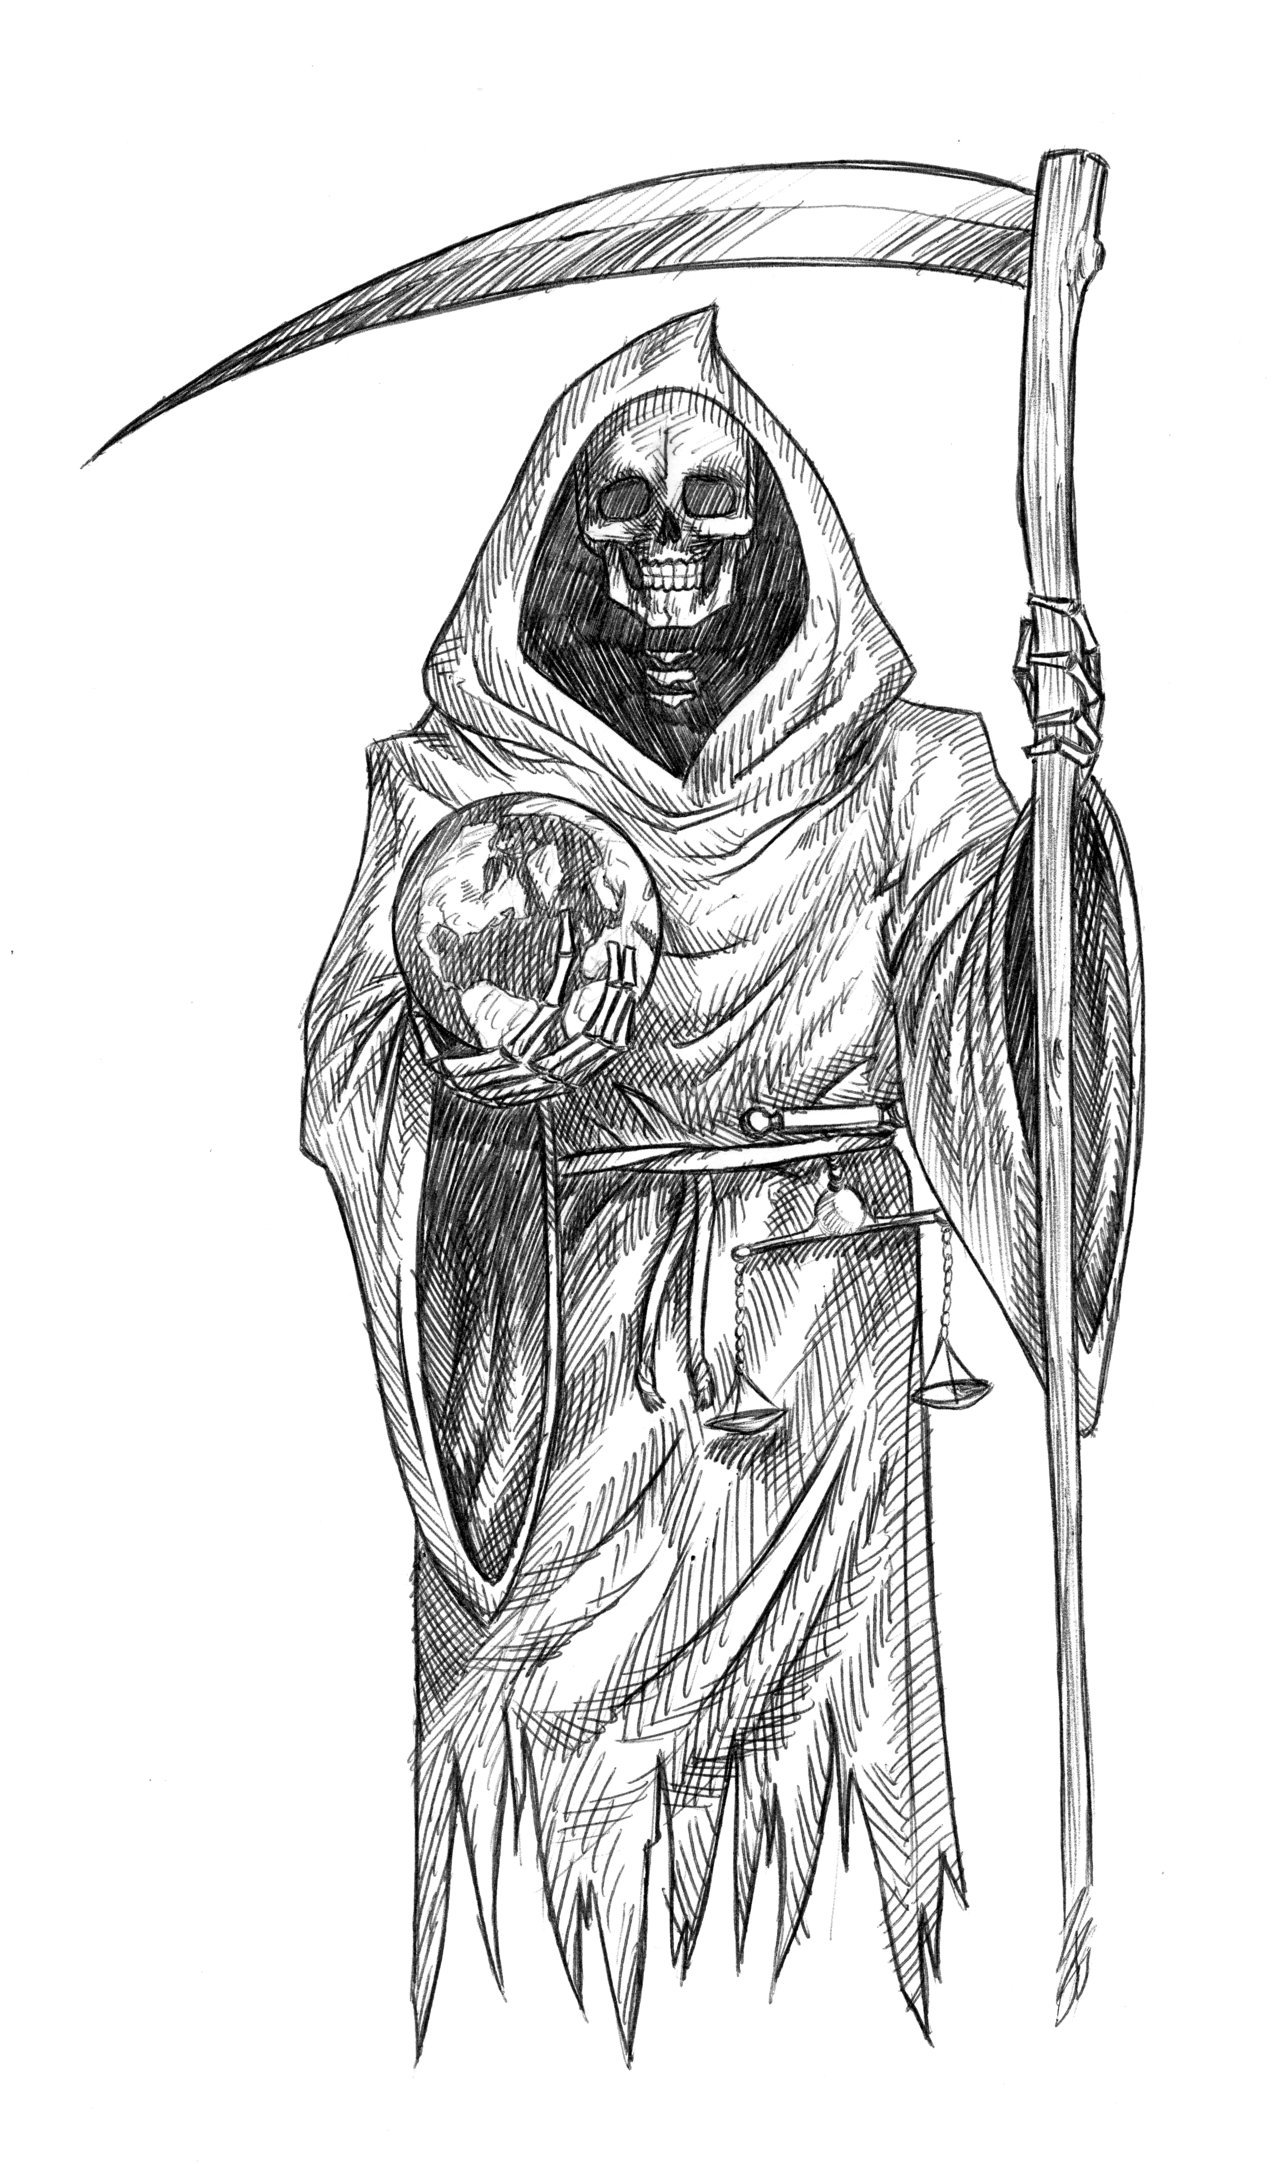 how to draw the grim reaper wayne tully horror art grim reaper drawing drawing the reaper how grim the to draw